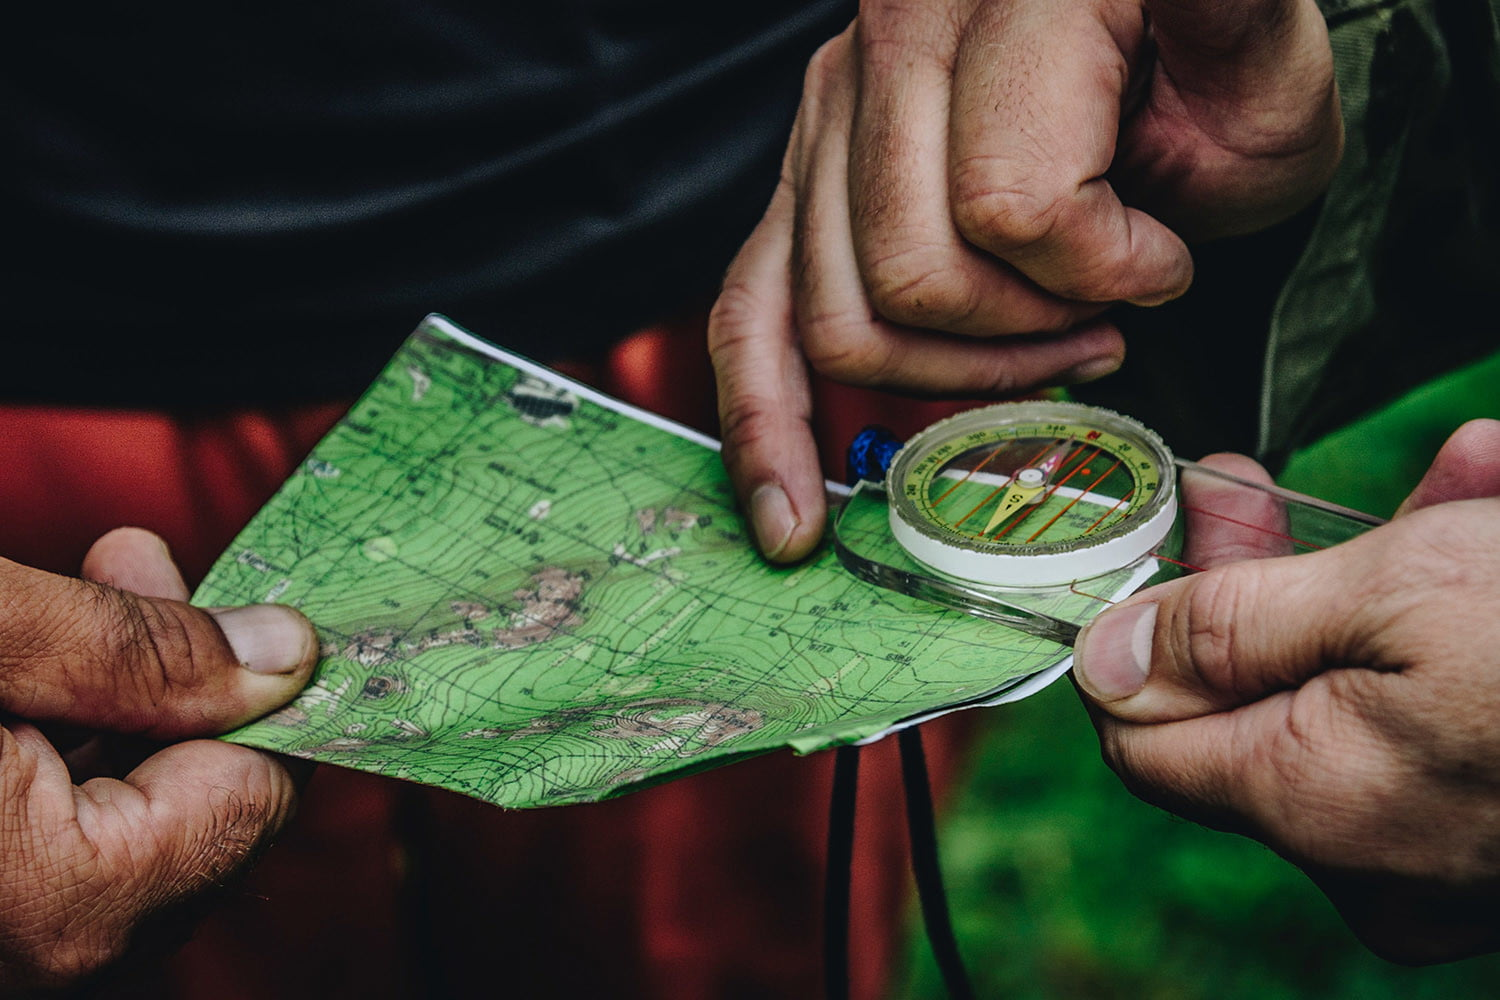 A Simple Guide on How to Navigate with a Map and Compass